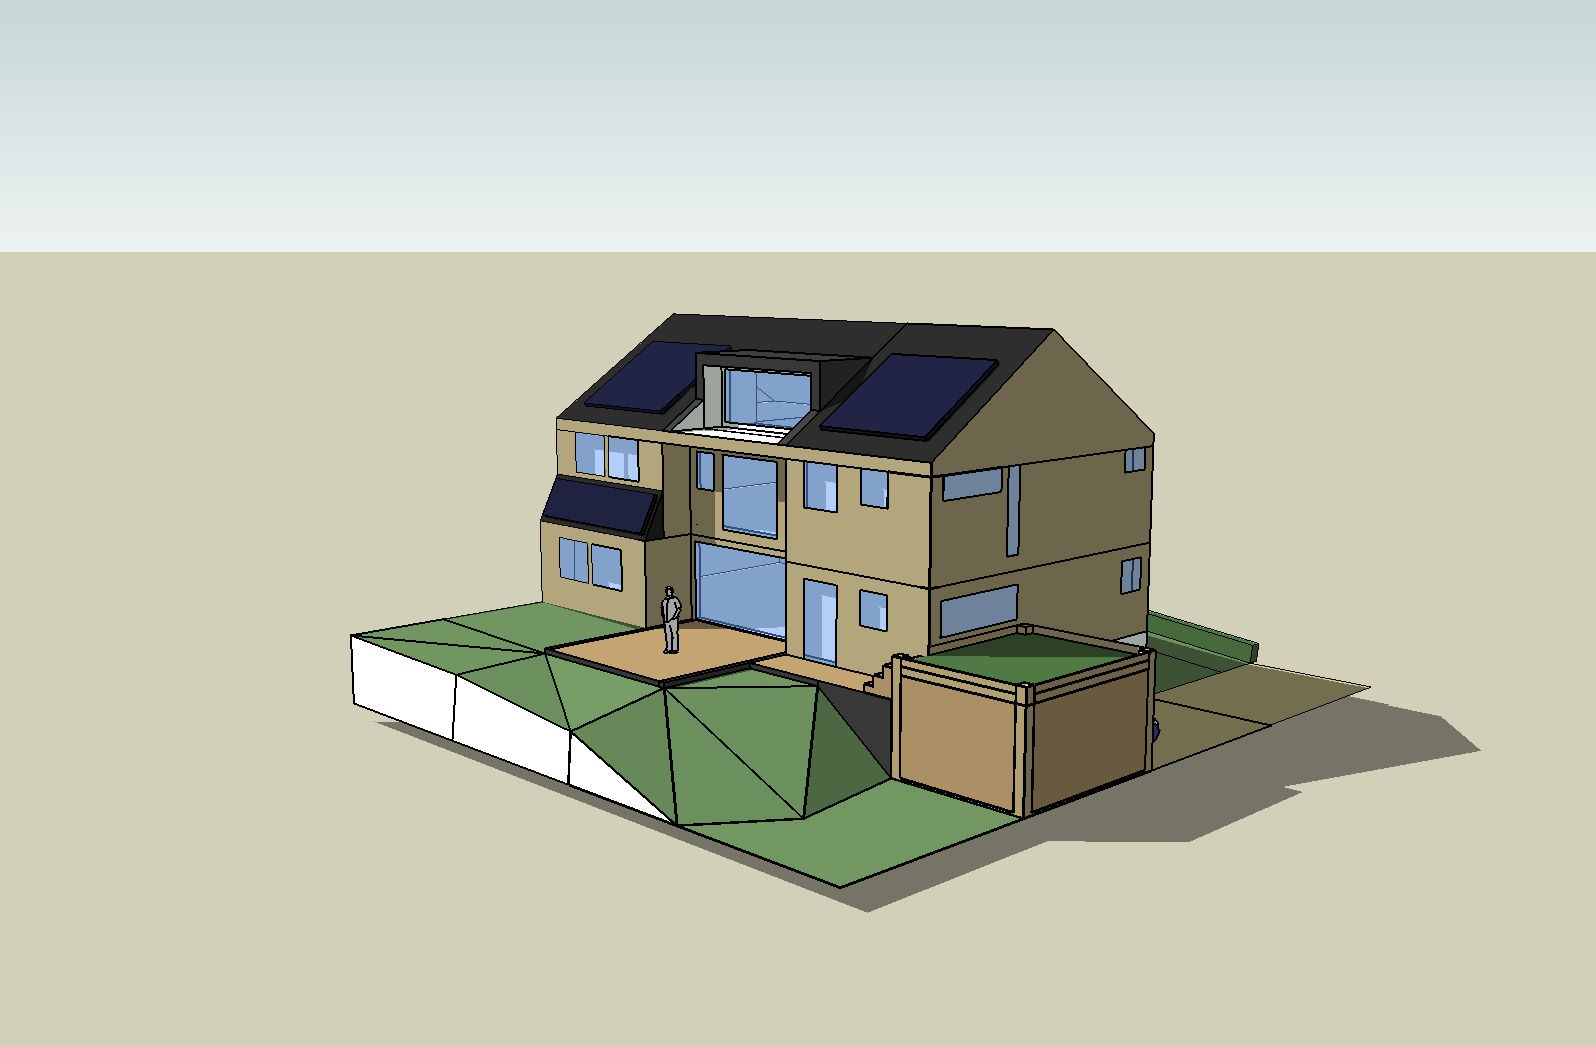 Concours vos r alisations sketchup cr a forum geekzone for Modele maison sketchup